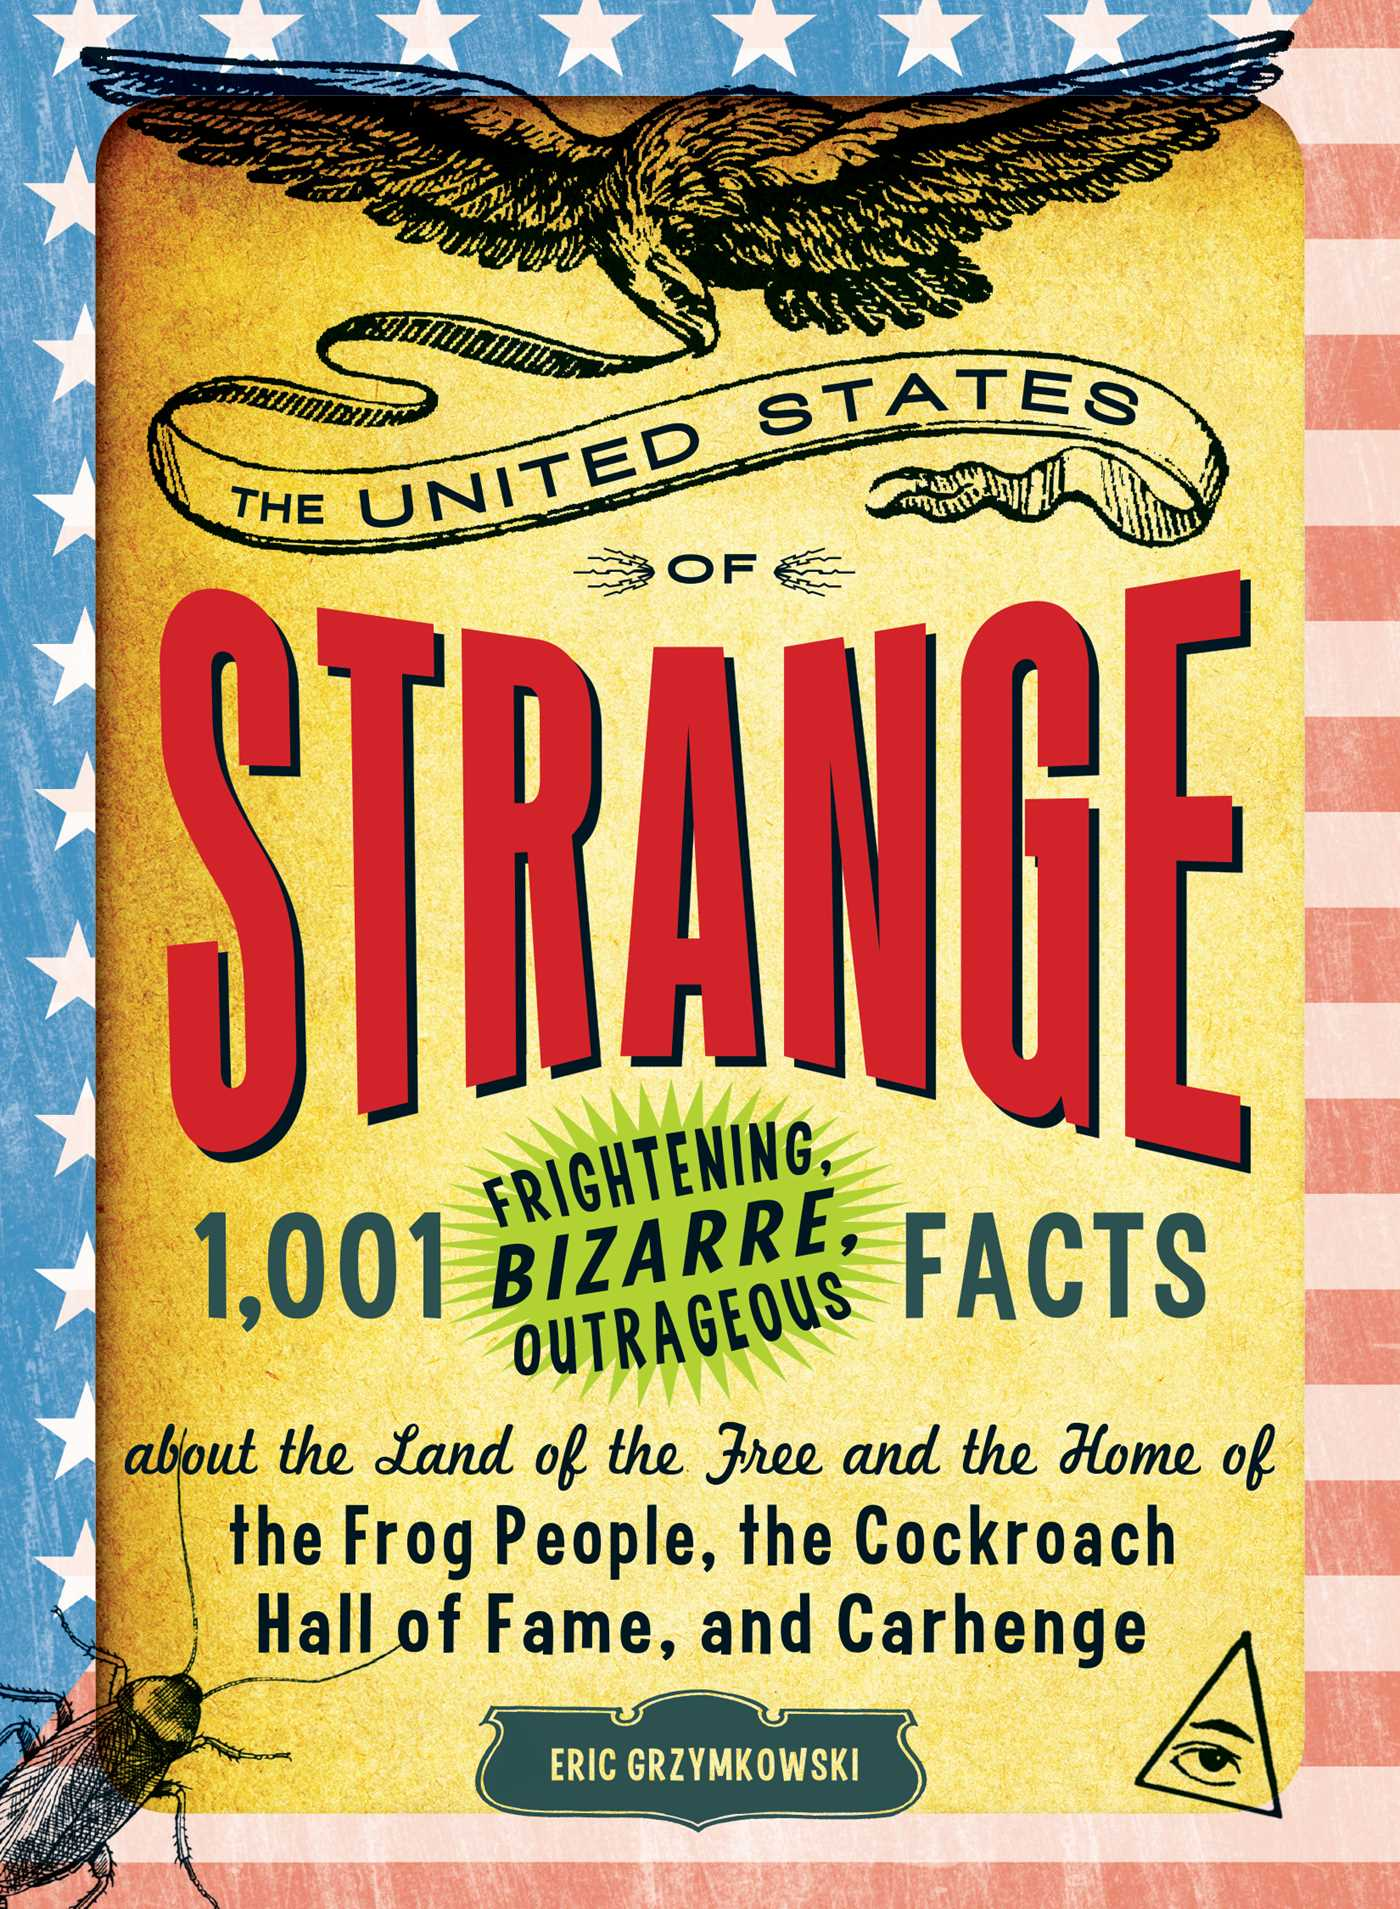 Did you have a strange dream Look at the dream book, cockroaches can tell about many things